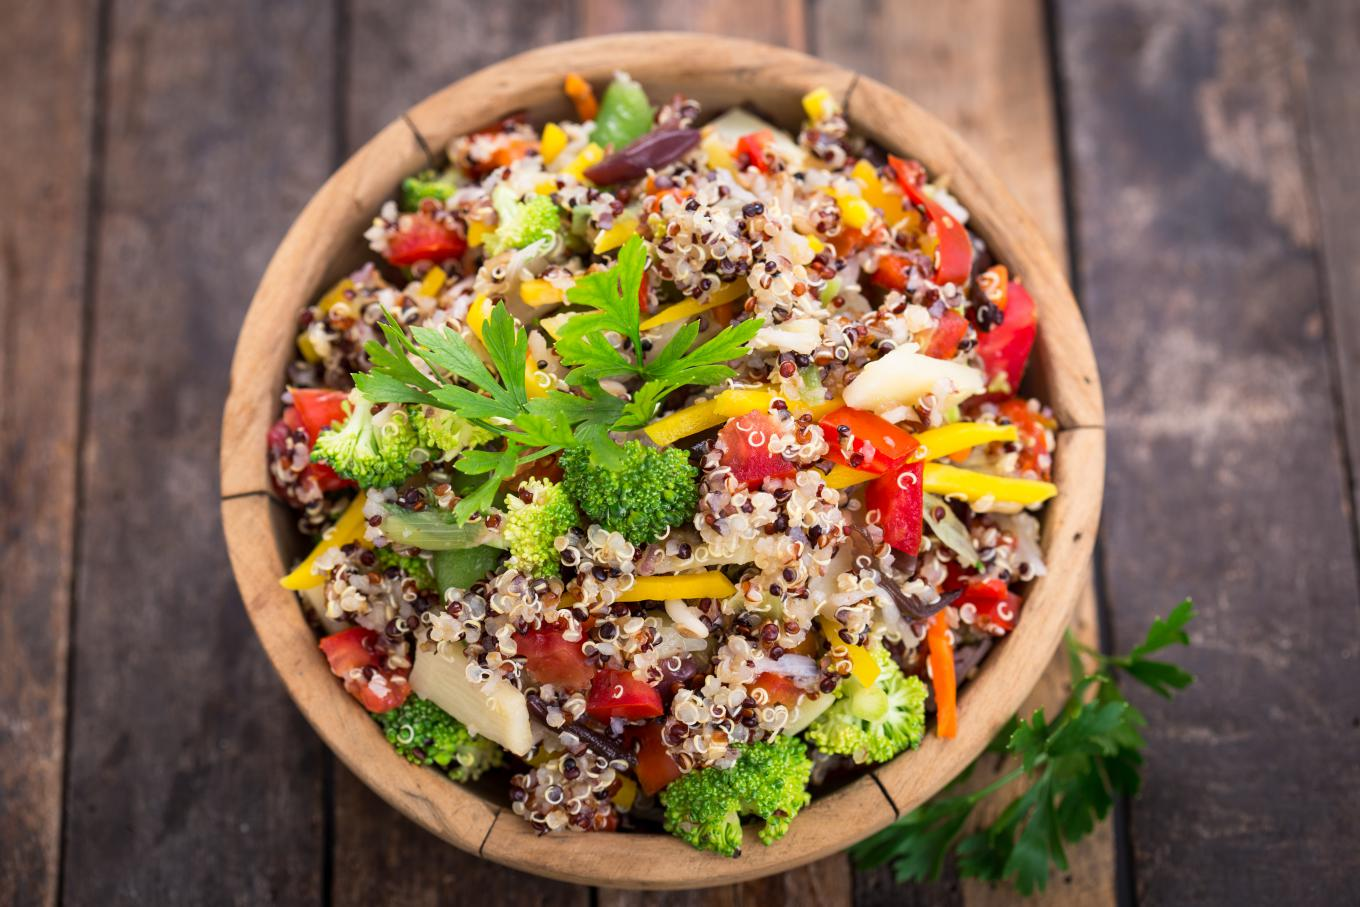 Healthy Cooking For One Tips To Stock Your Kitchen And